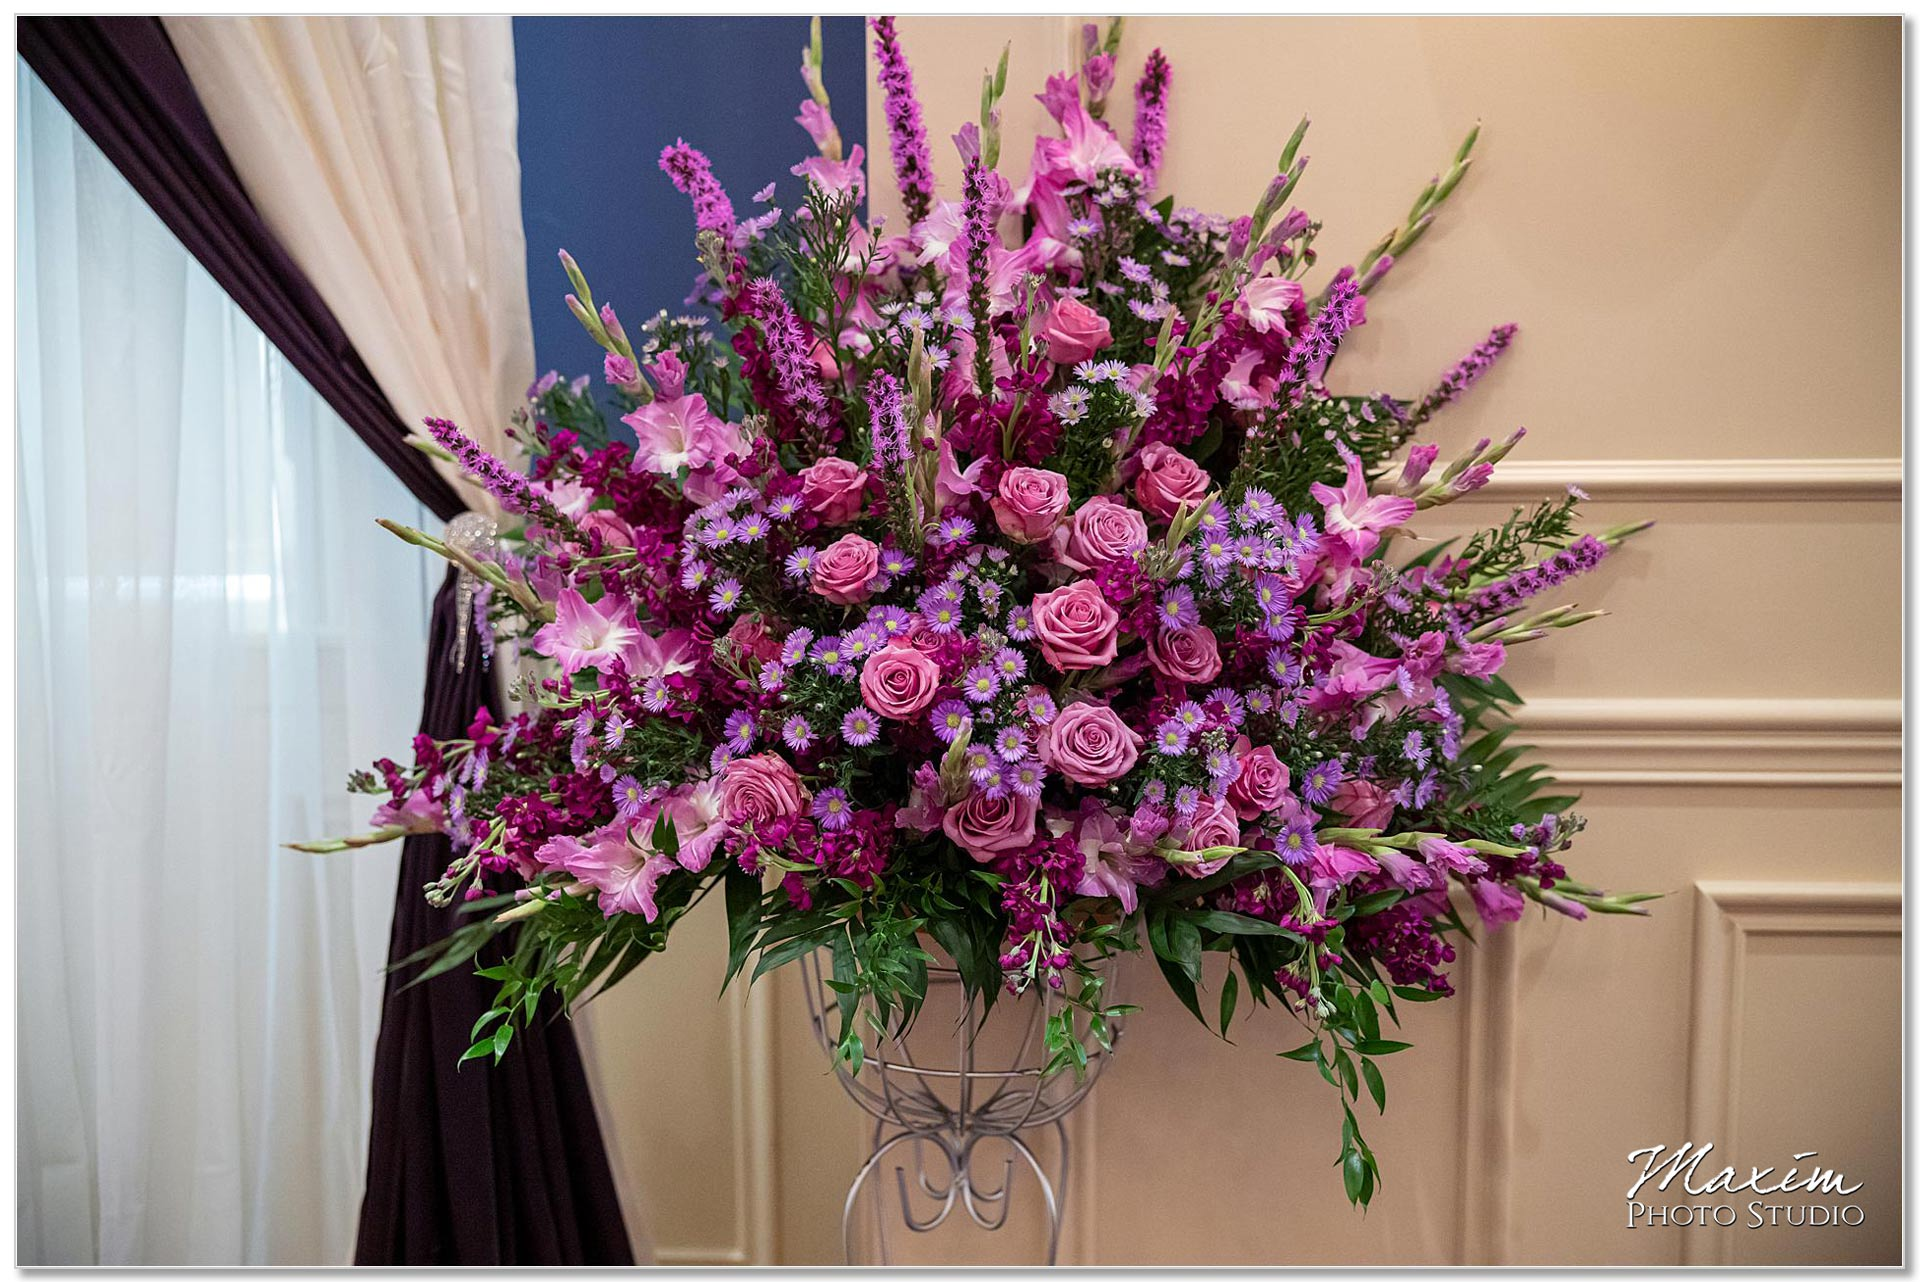 Dale's Designs and Florals